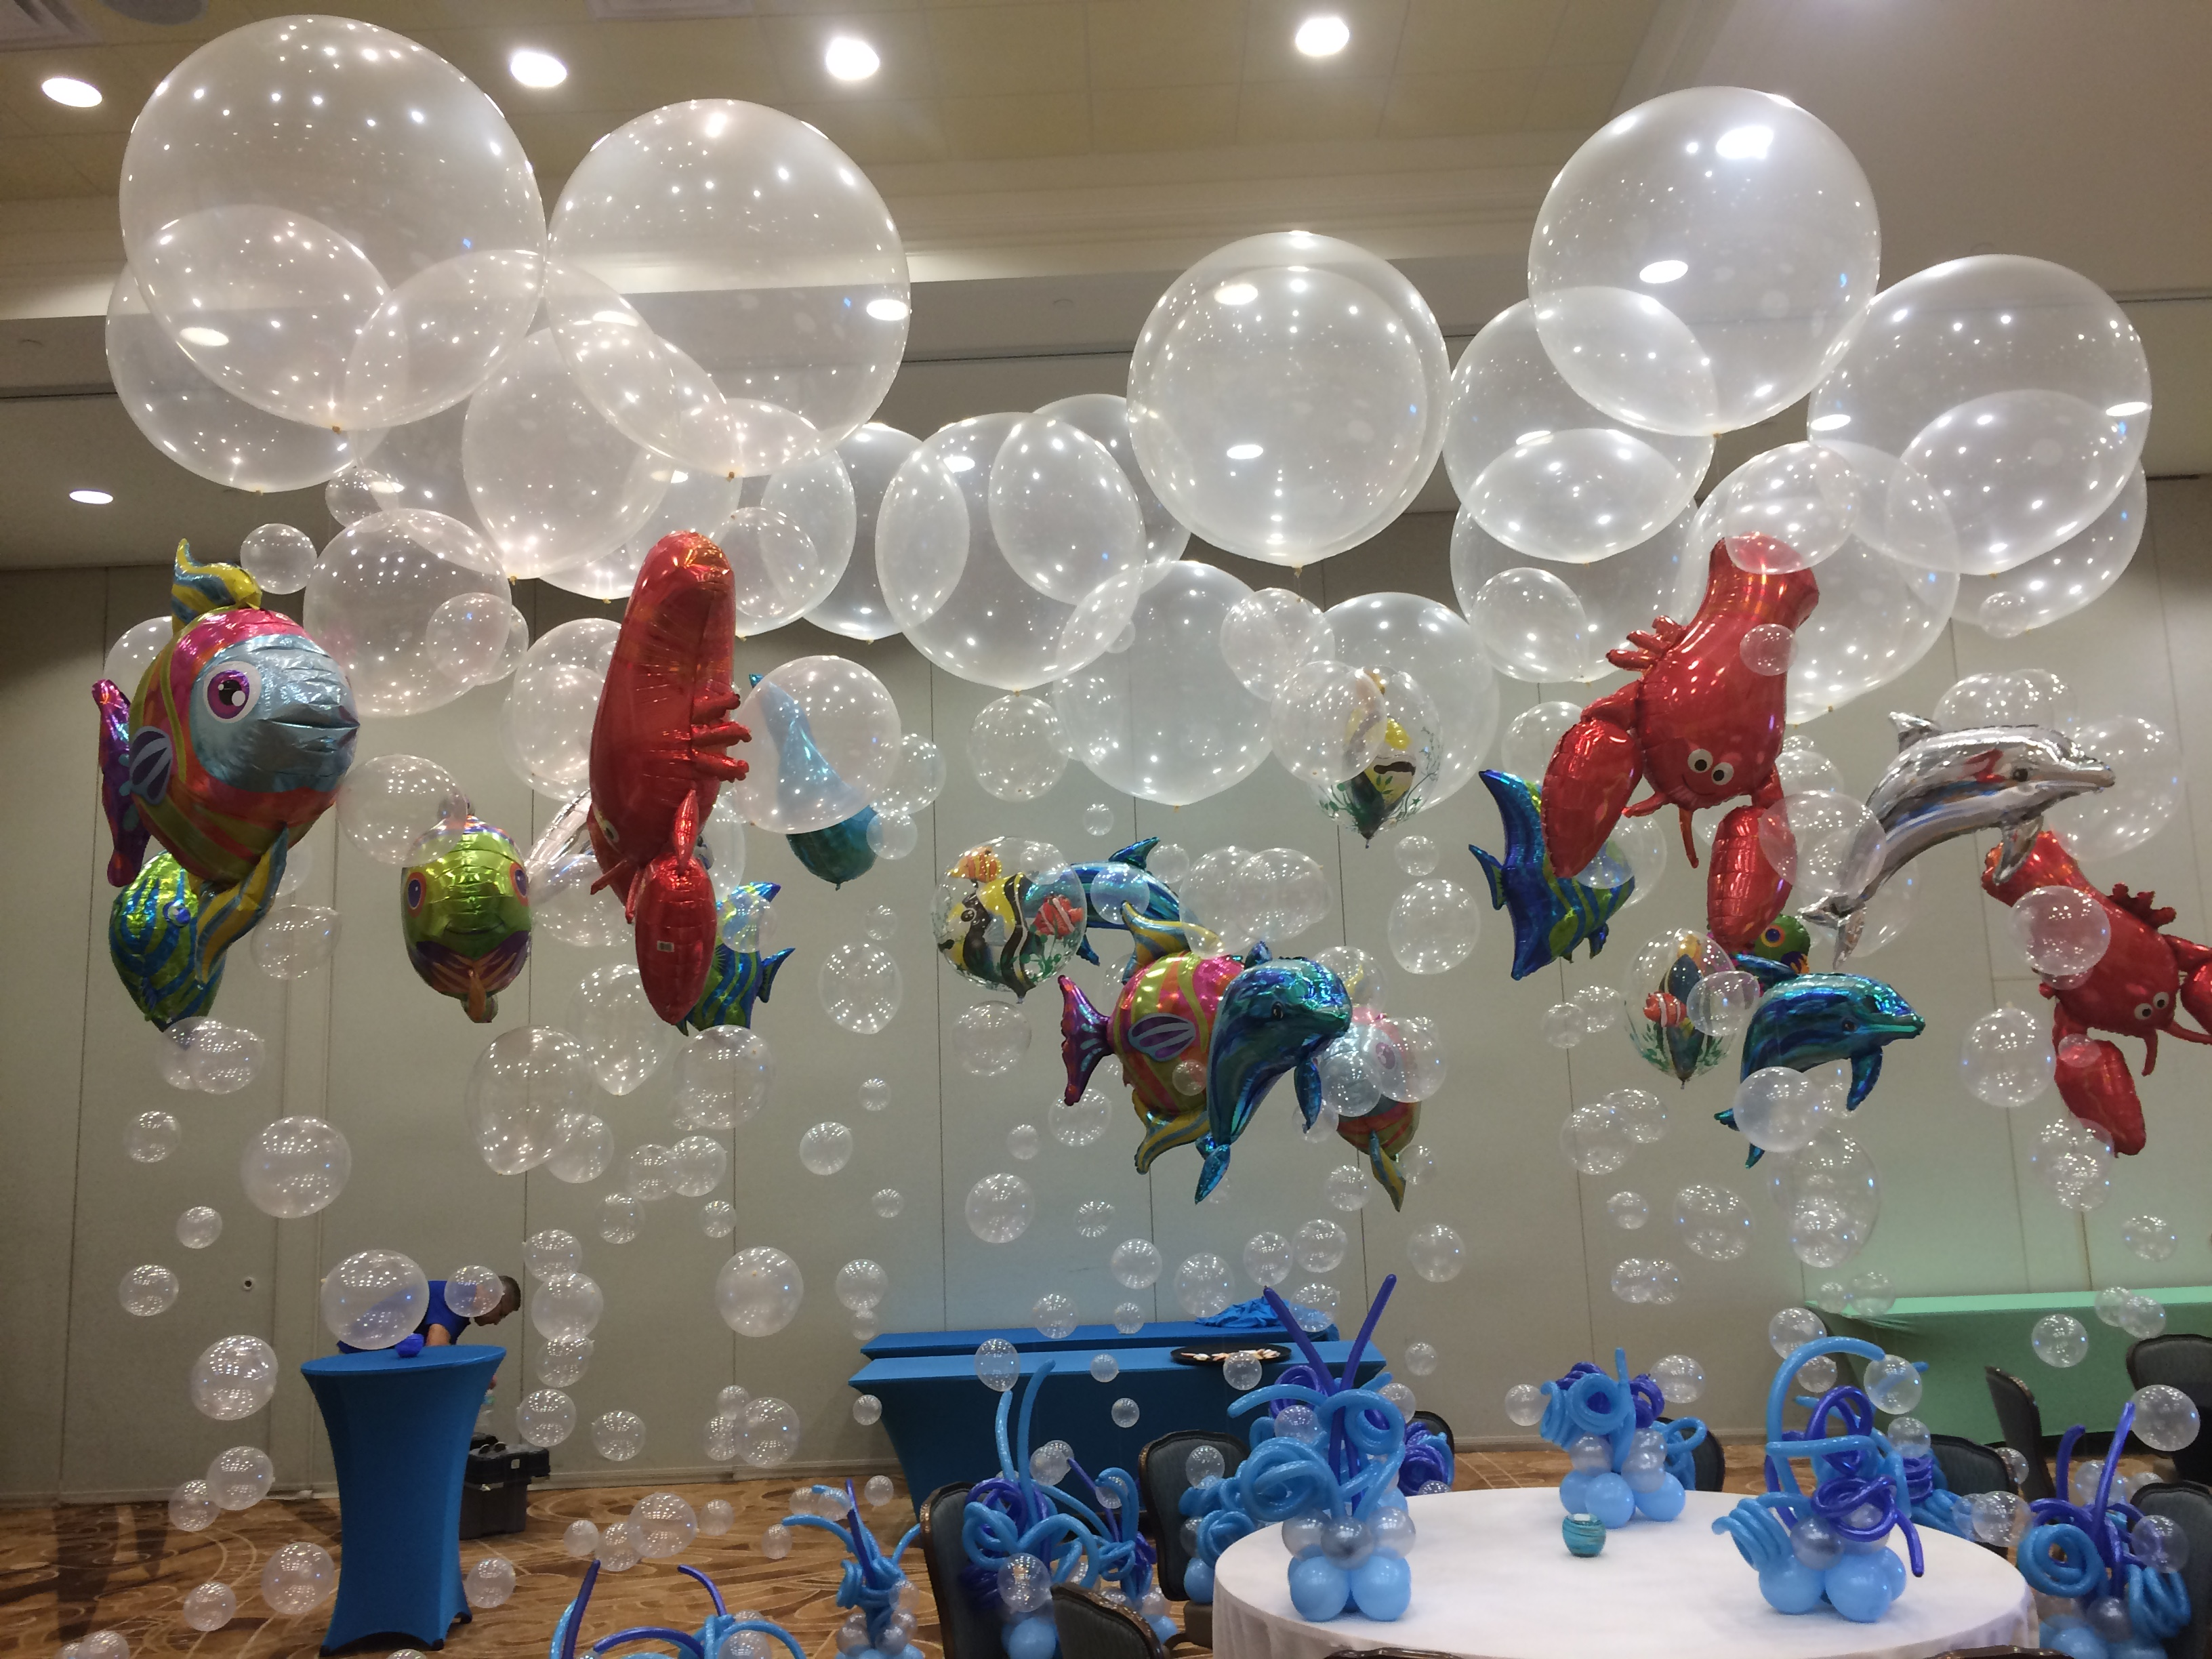 Bubble balloons and fish balloons